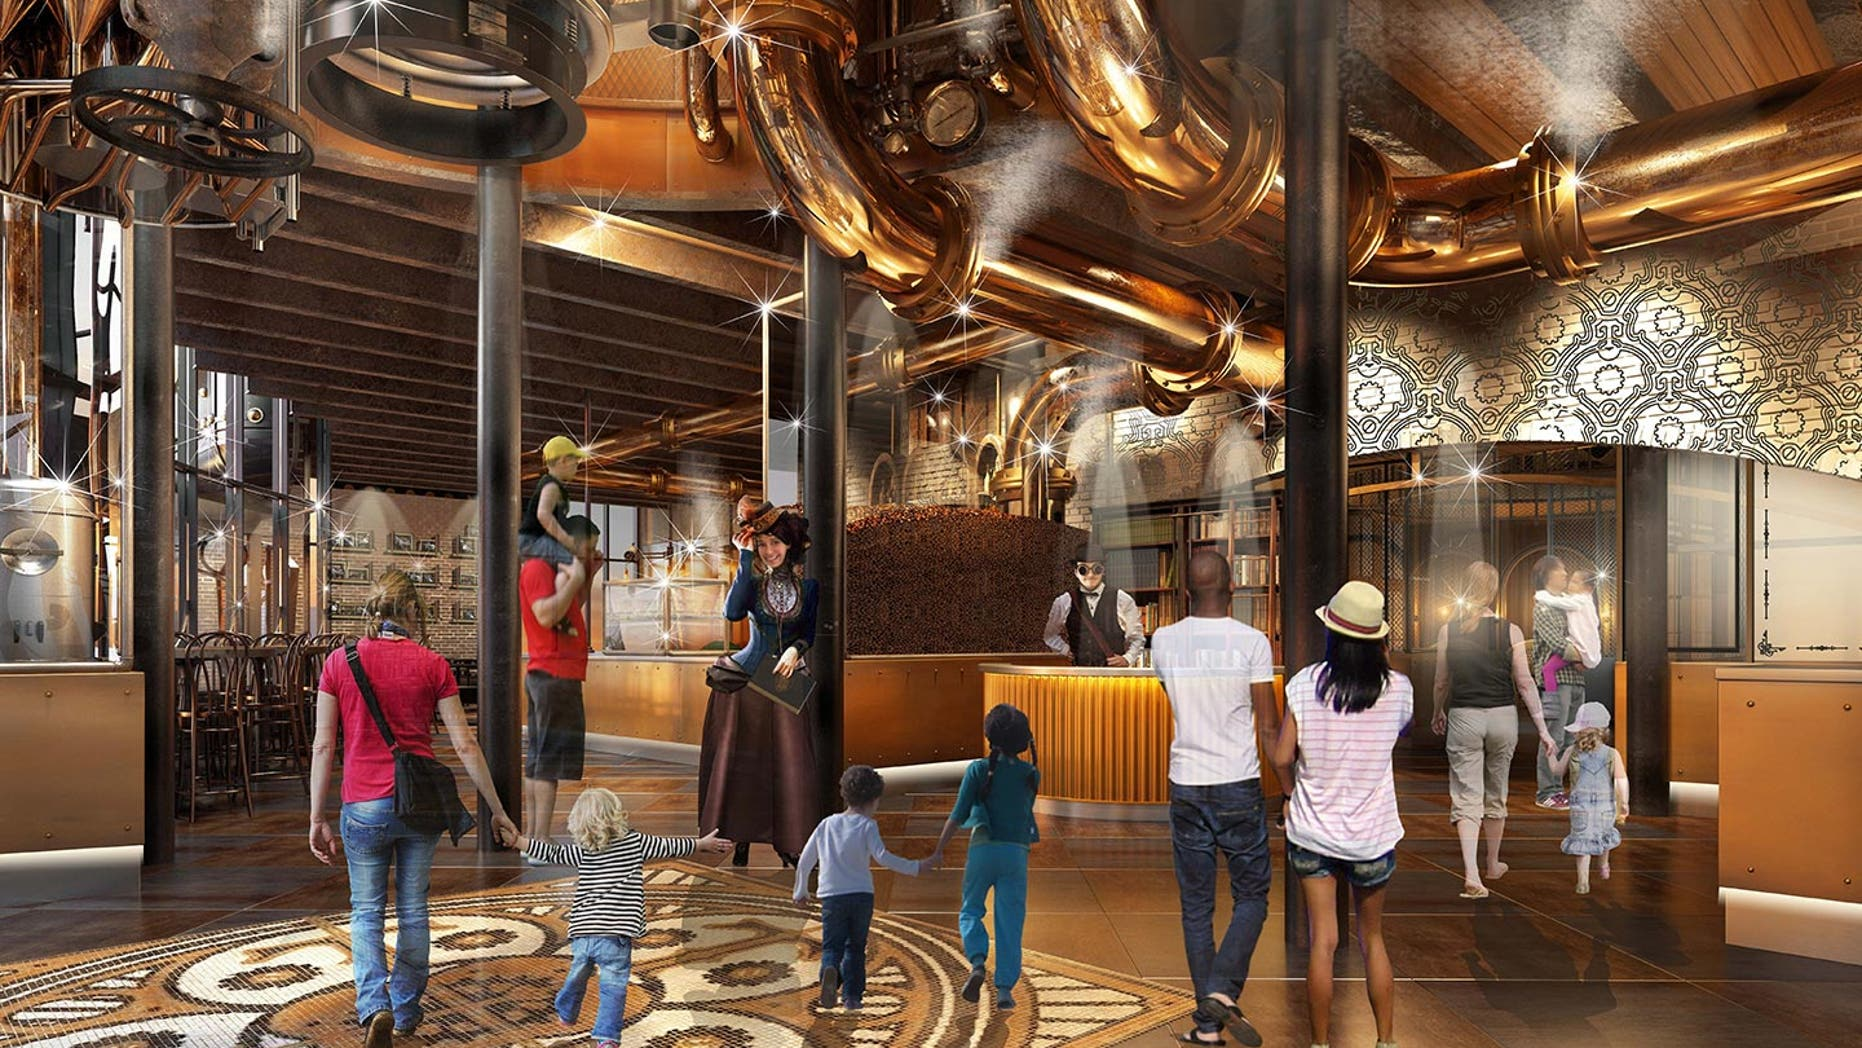 Inside Willy Wonka's steampunk chocolate factory restaurant.